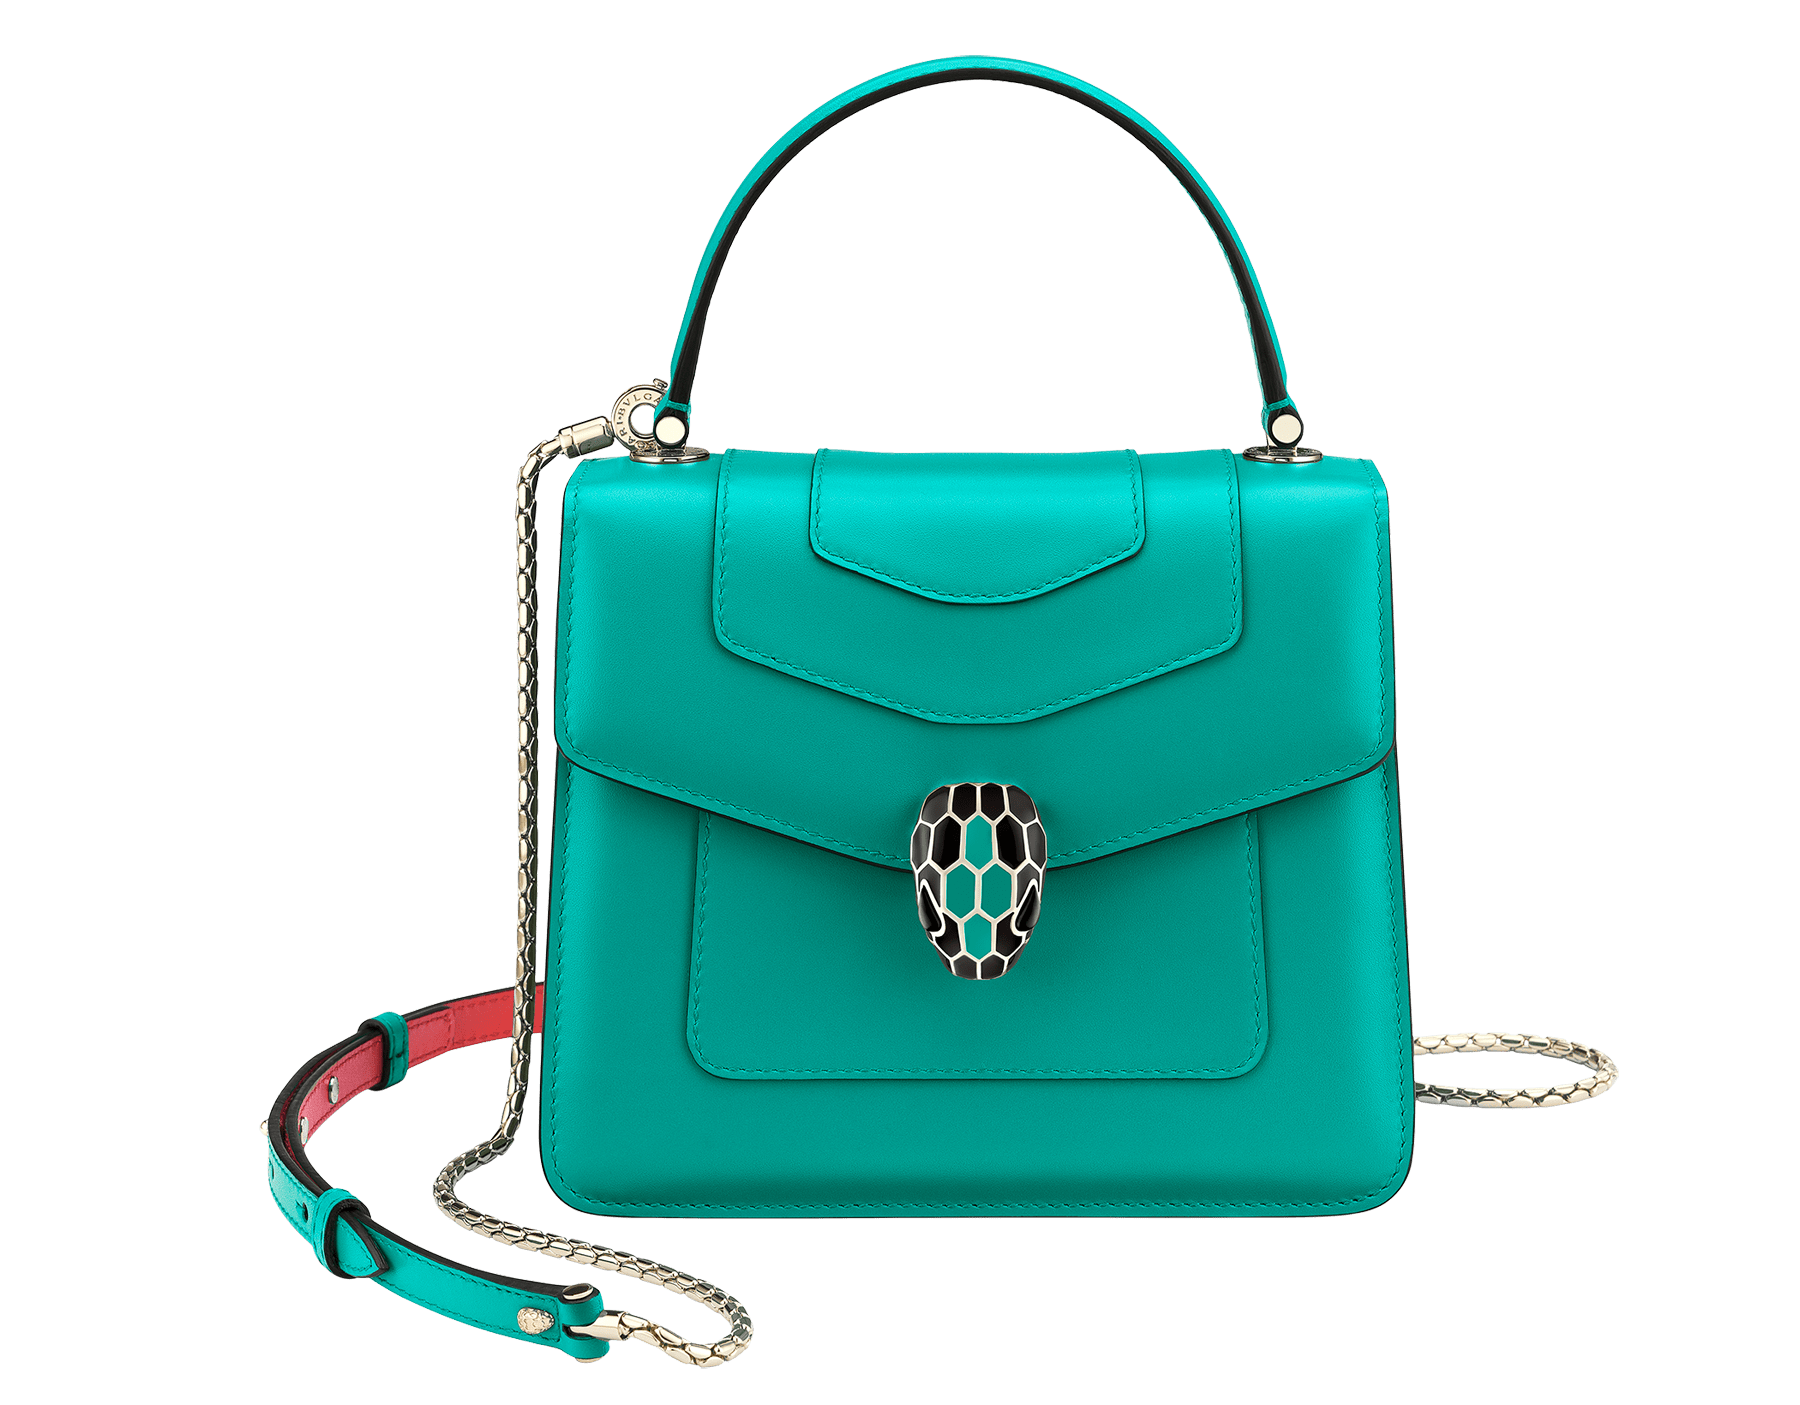 Serpenti Forever crossbody bag in tropical turquoise smooth calf leather body and sea star coral calf leather sides. Snakehead closure in light gold plated brass decorated with tropical turquoise and black enamel, and black onyx eyes. 287964 image 1